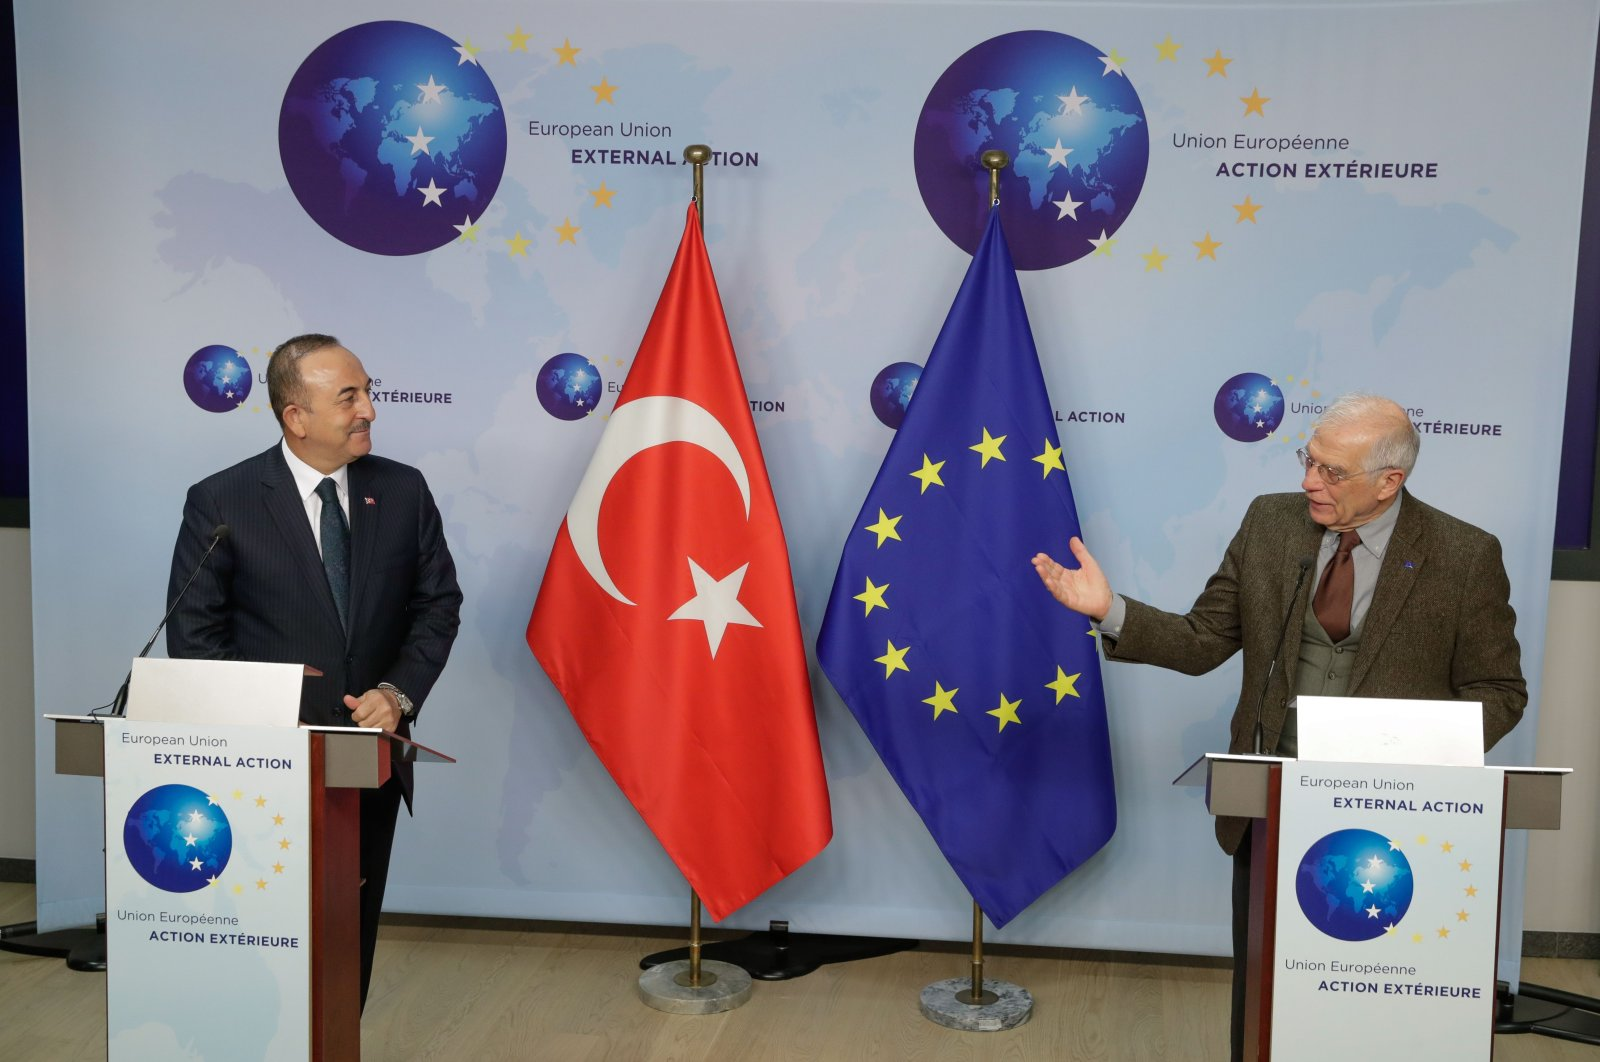 Foreign Minister Mevlüt Çavuşoğlu (L) and High Representative of the European Union for Foreign Affairs and Security Policy Josep Borrell give a joint statement ahead of a meeting at the EEAS in Brussels, Jan. 21, 2021. (AFP Photo)